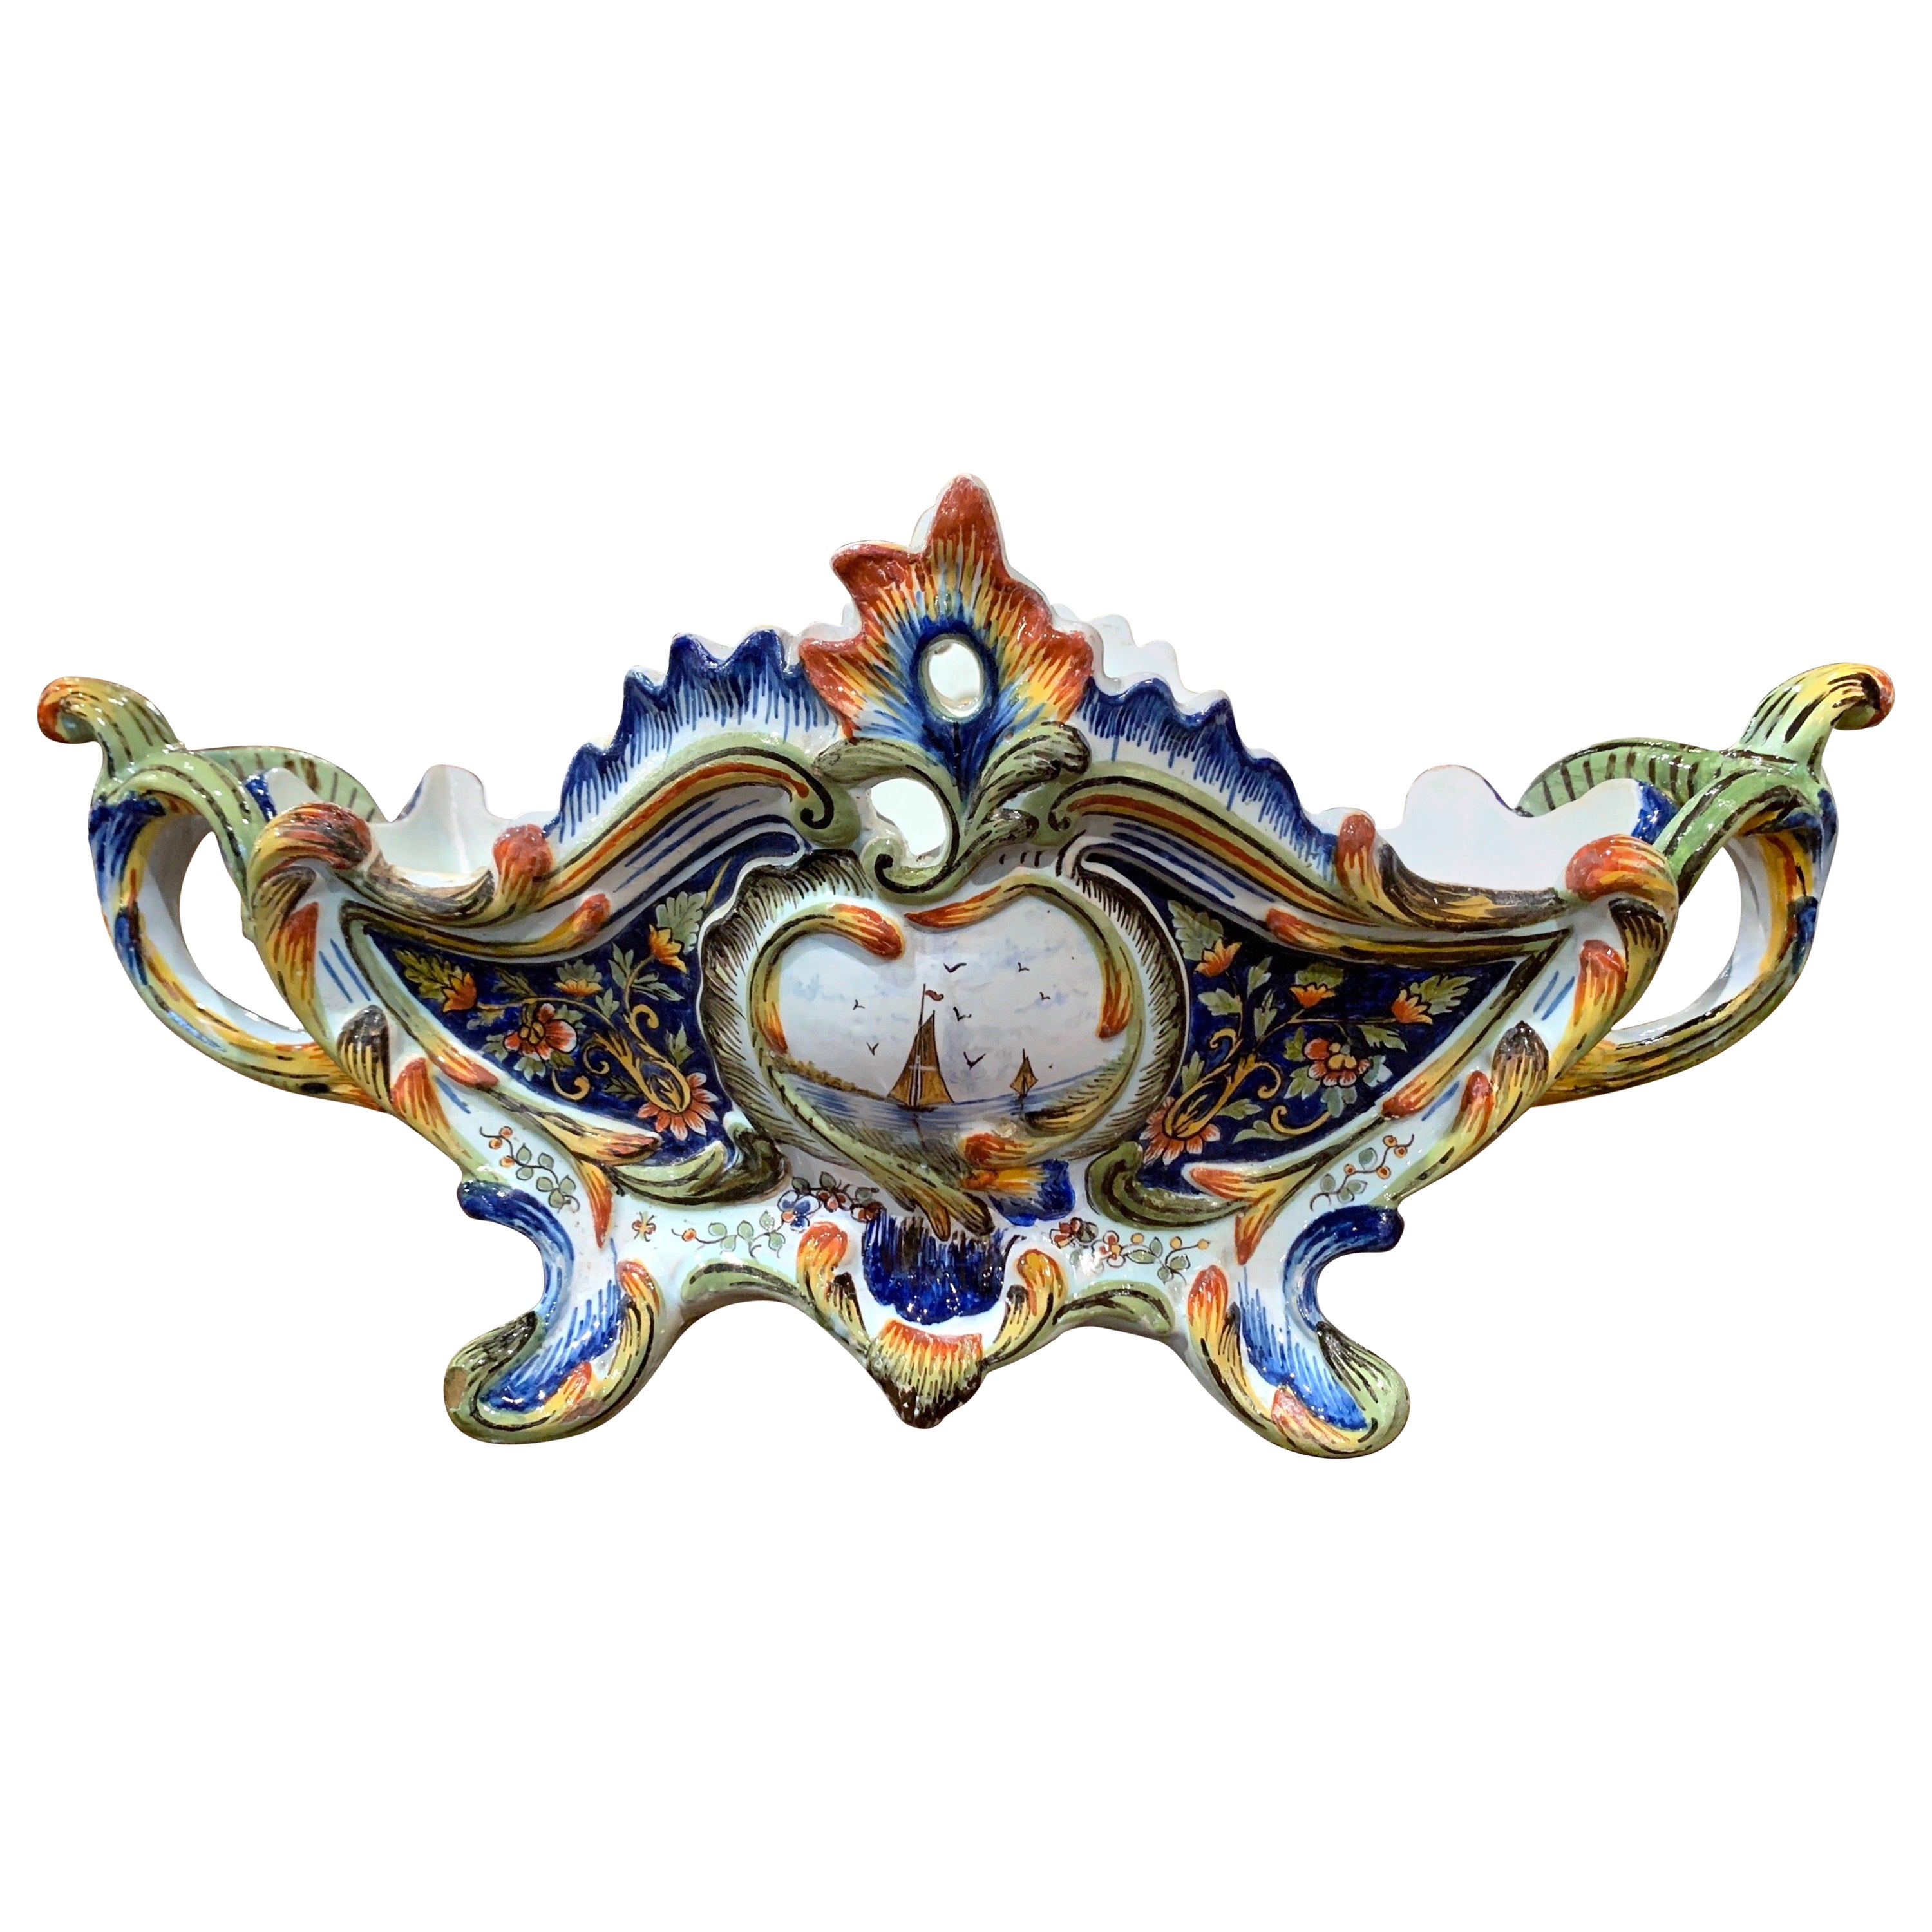 19th Century French Hand Painted Faience Jardinière from Normandy